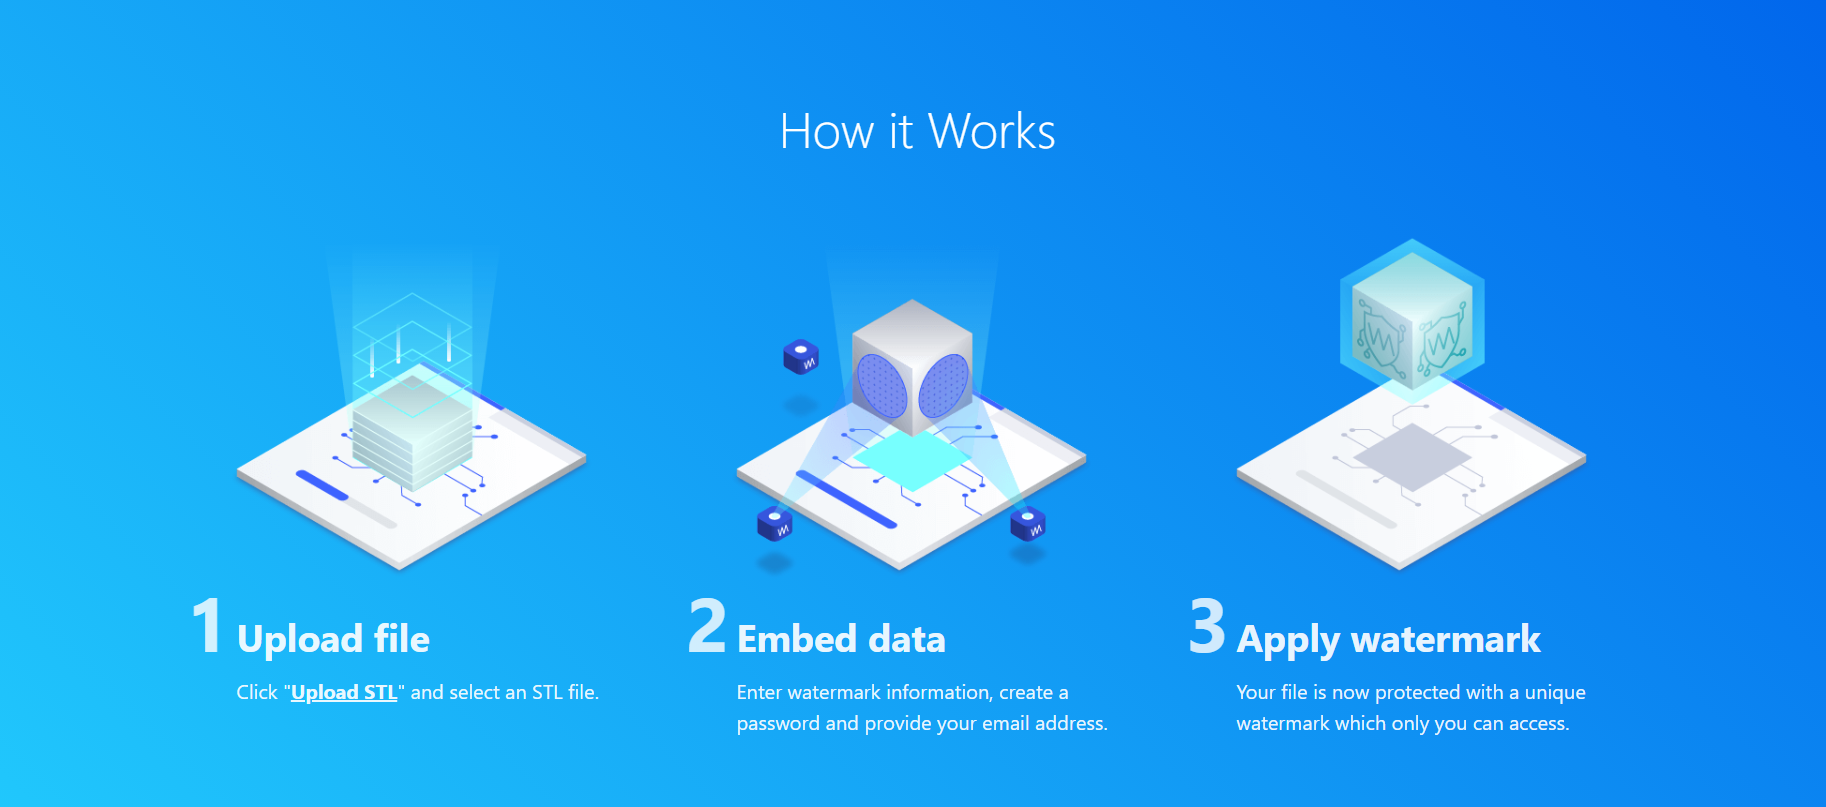 Overview of Watermark3D's privacy protection process